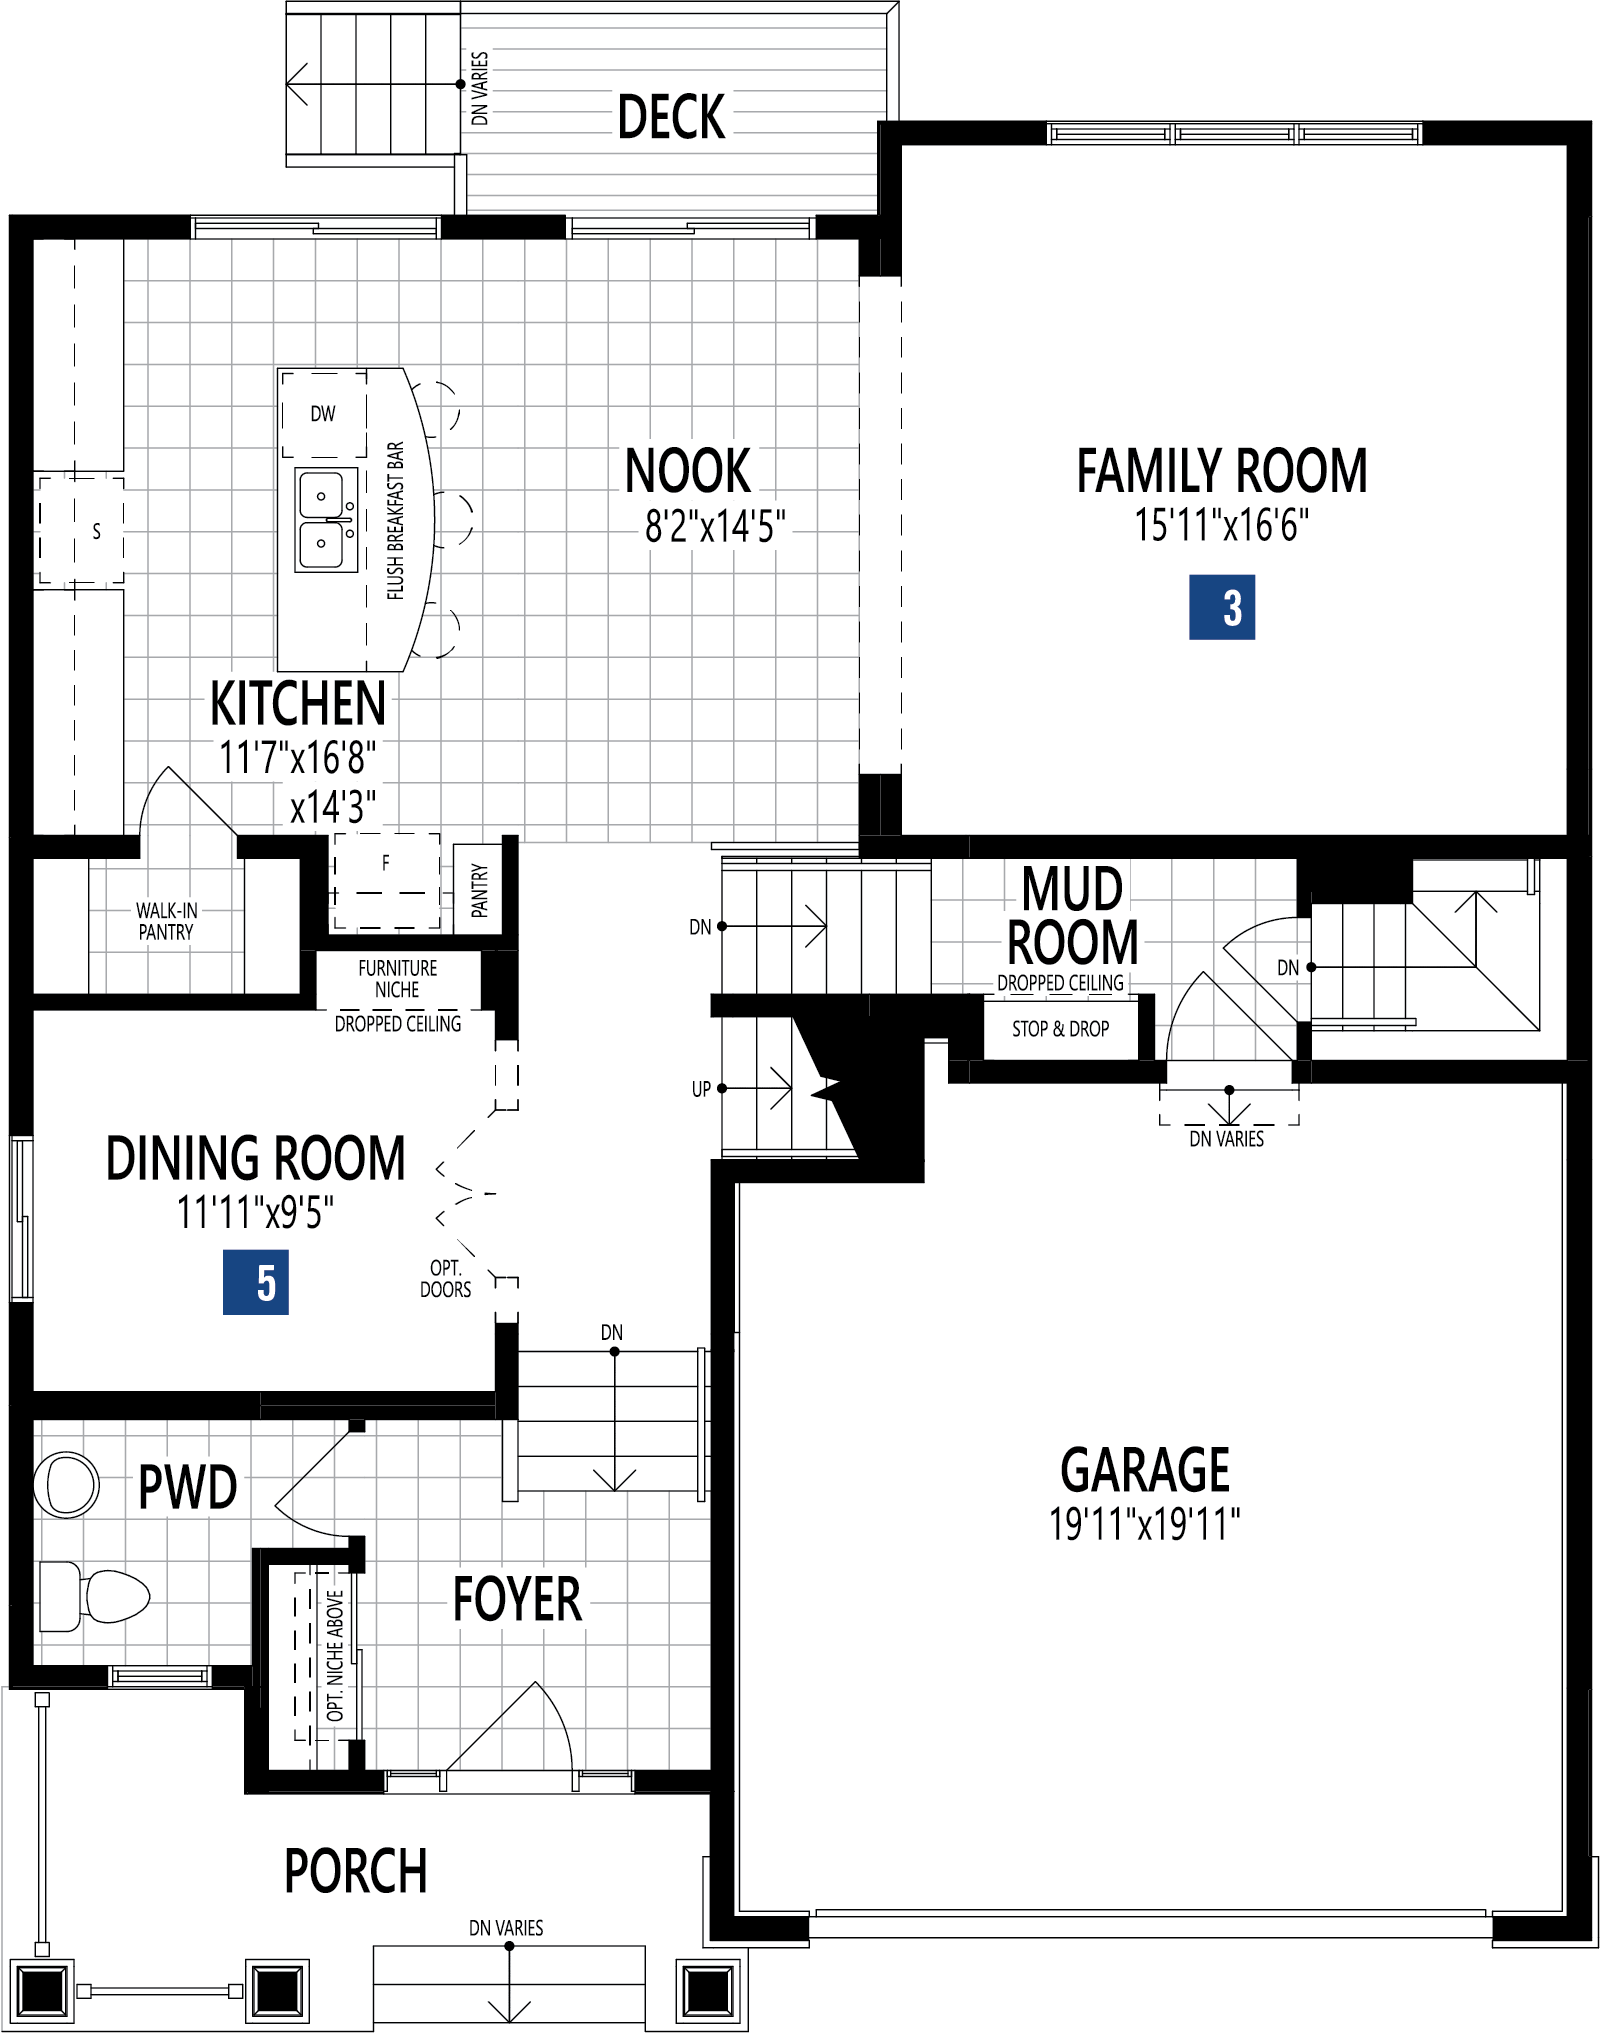 Rutherford Plan Floor Plan at Yorkville in Calgary Alberta by Mattamy Homes